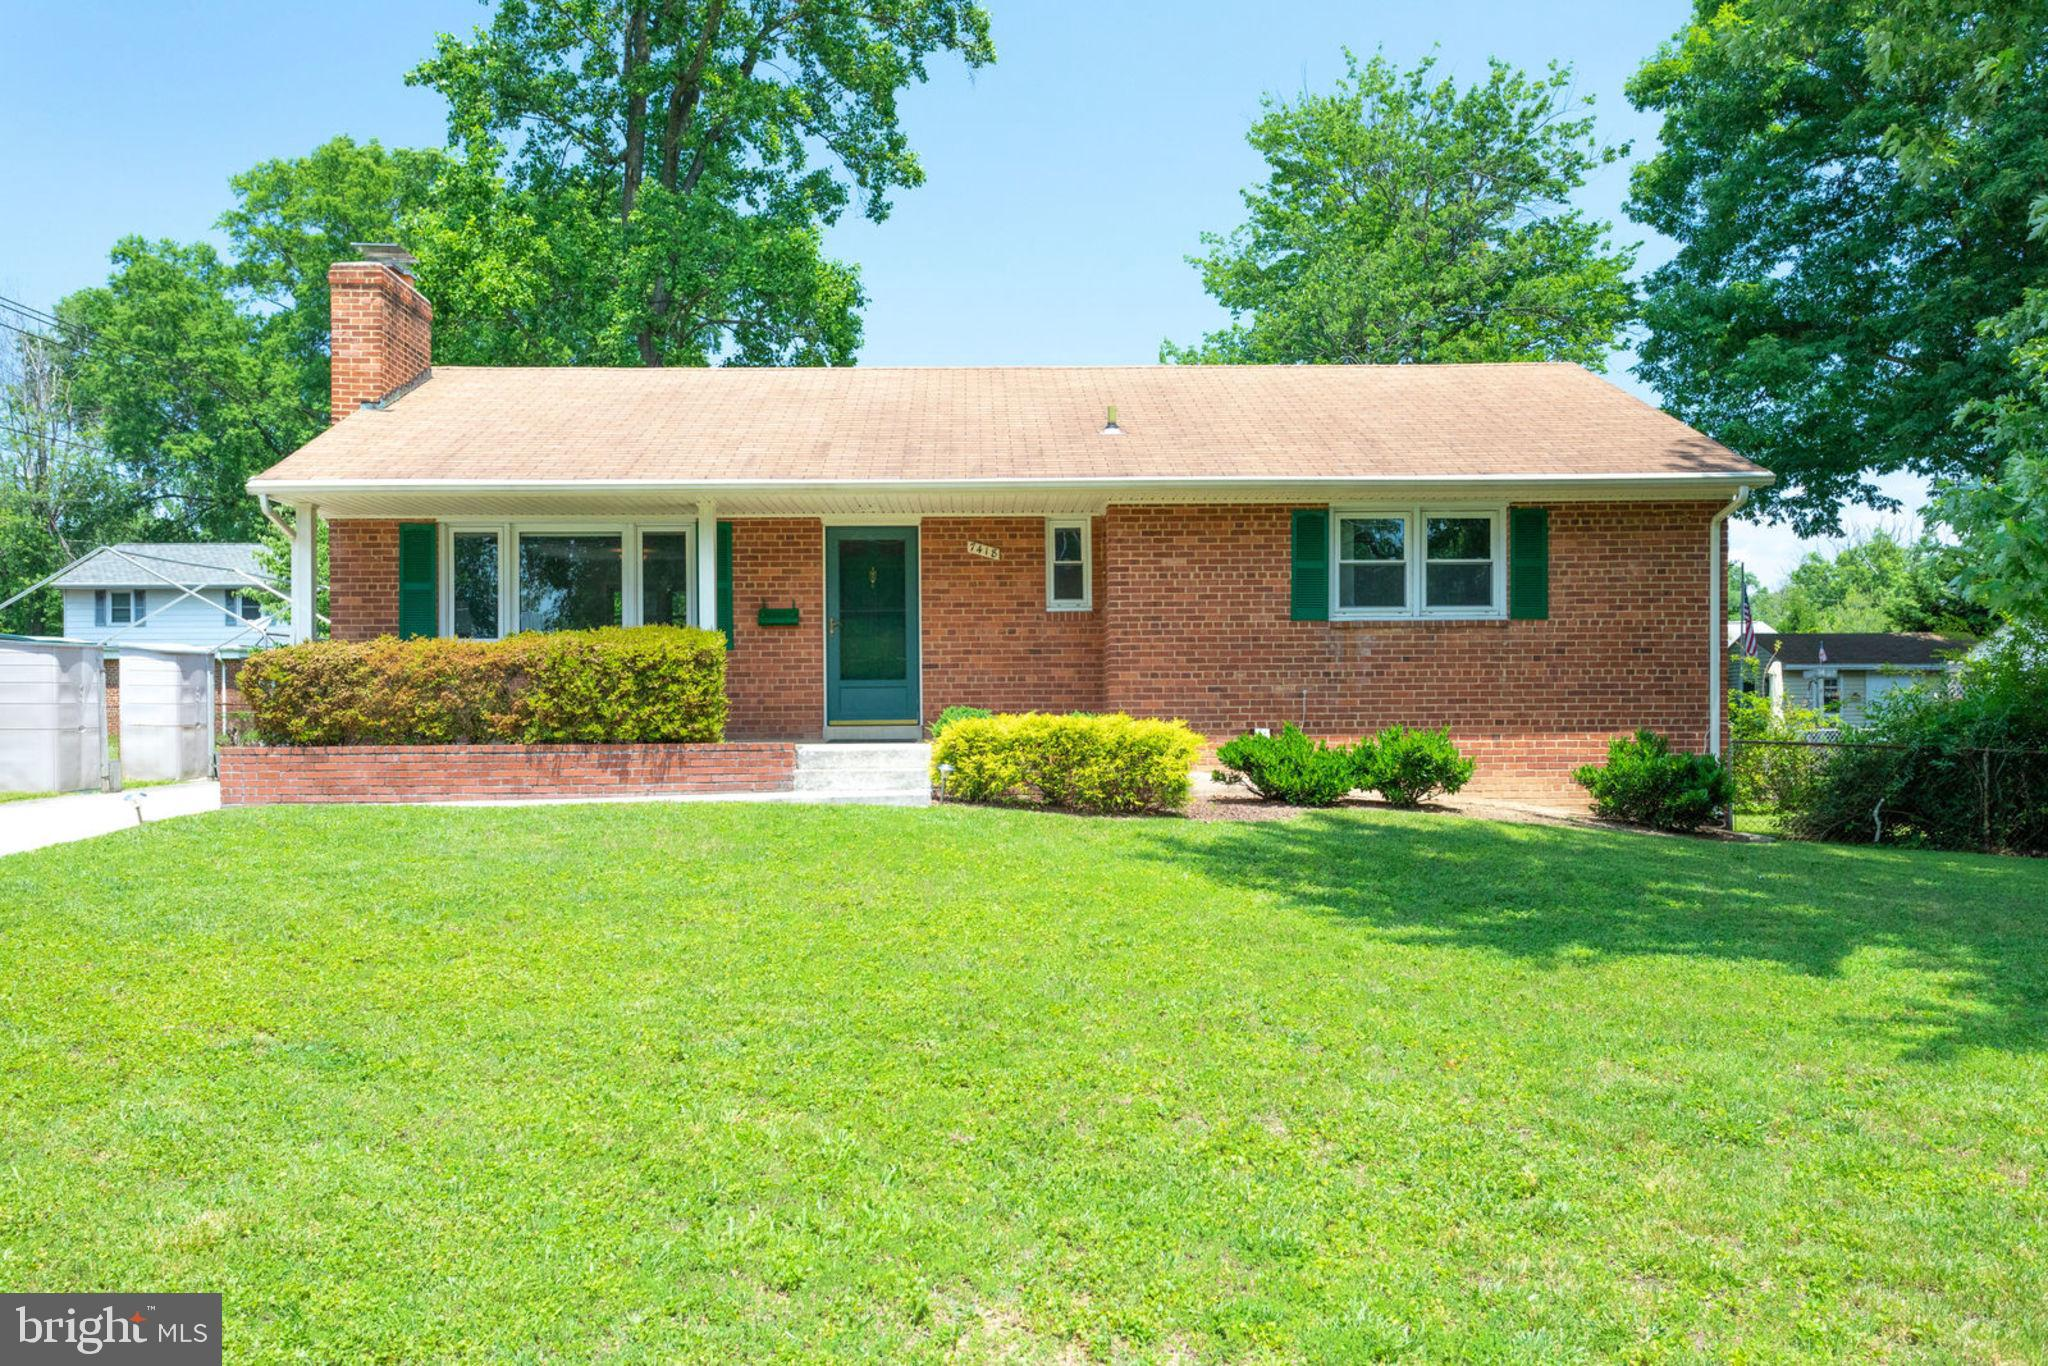 Beautifully-maintained 4 bedroom, 2.5 bath rambler features a gorgeous, updated gourmet kitchen with new cabinets and granite counters. Numerous upgrades including fresh paint throughout, updated baths, and  hardwood floors on the main level. Fourth bedroom and full bath on lower level along with spacious family/recreation room. Stunning landscaping in the spacious, flat yard as well as two storage sheds. Pool located in the neighborhood. Great commuter's location conveniently located off Braddock Rd and the Beltway, minutes from Interstate 95 and 395 into Crystal City, Washington DC, Reagan National Airport. Rolling Road VRE close by. 17M metro bus steps away. Wonderful shopping nearby: Kings Parking Shopping Center, Bradlick Shopping Center, Tysons Corner, Springfield Mall, and more!